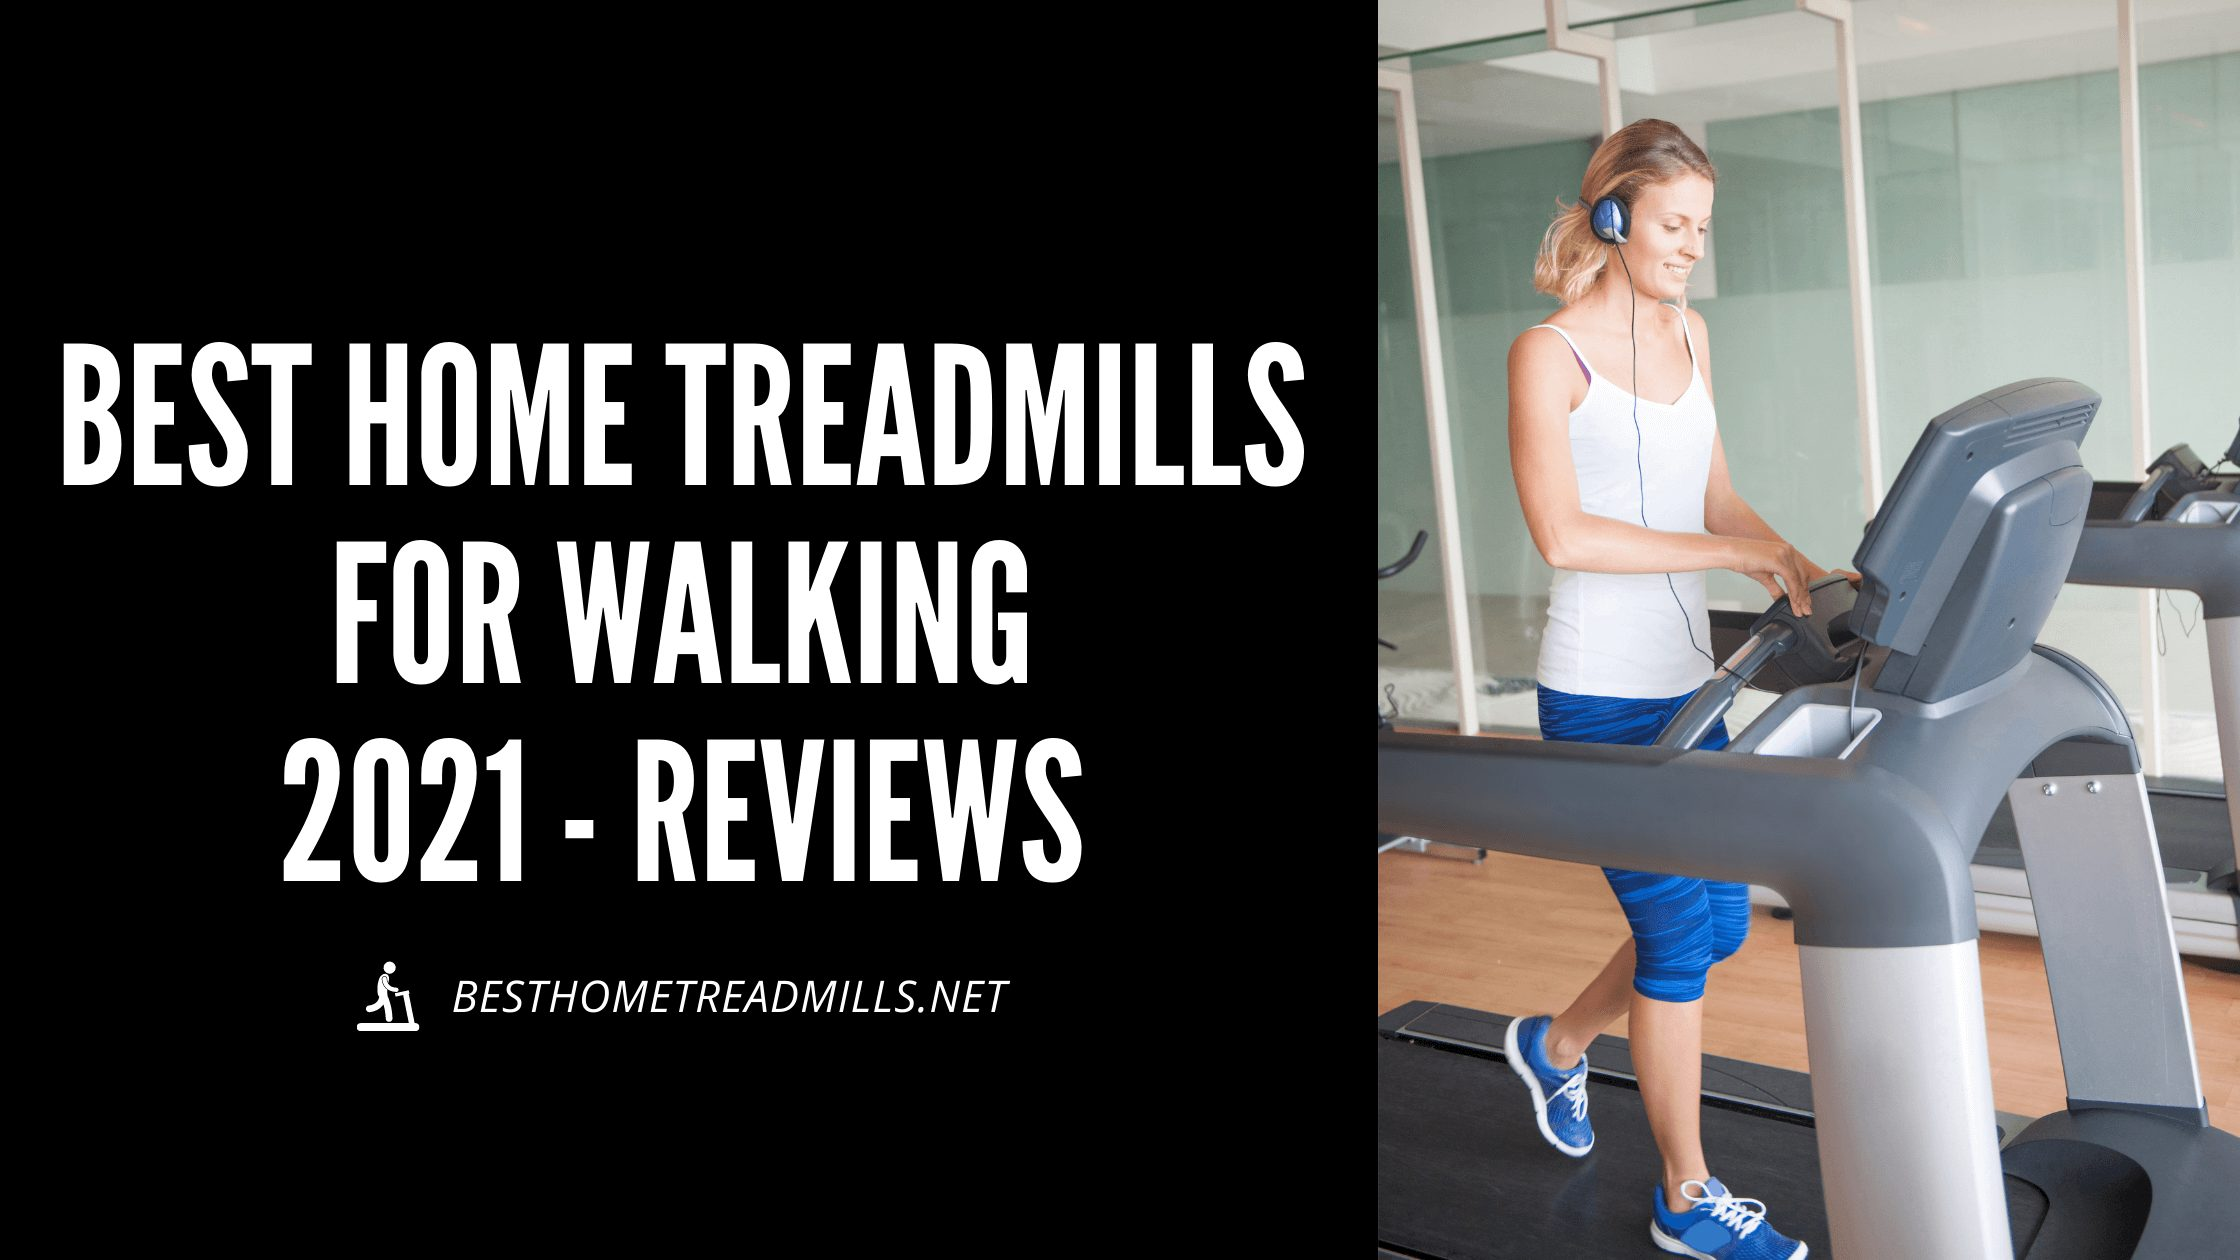 Best home treadmills for walking 2021 Featured Image